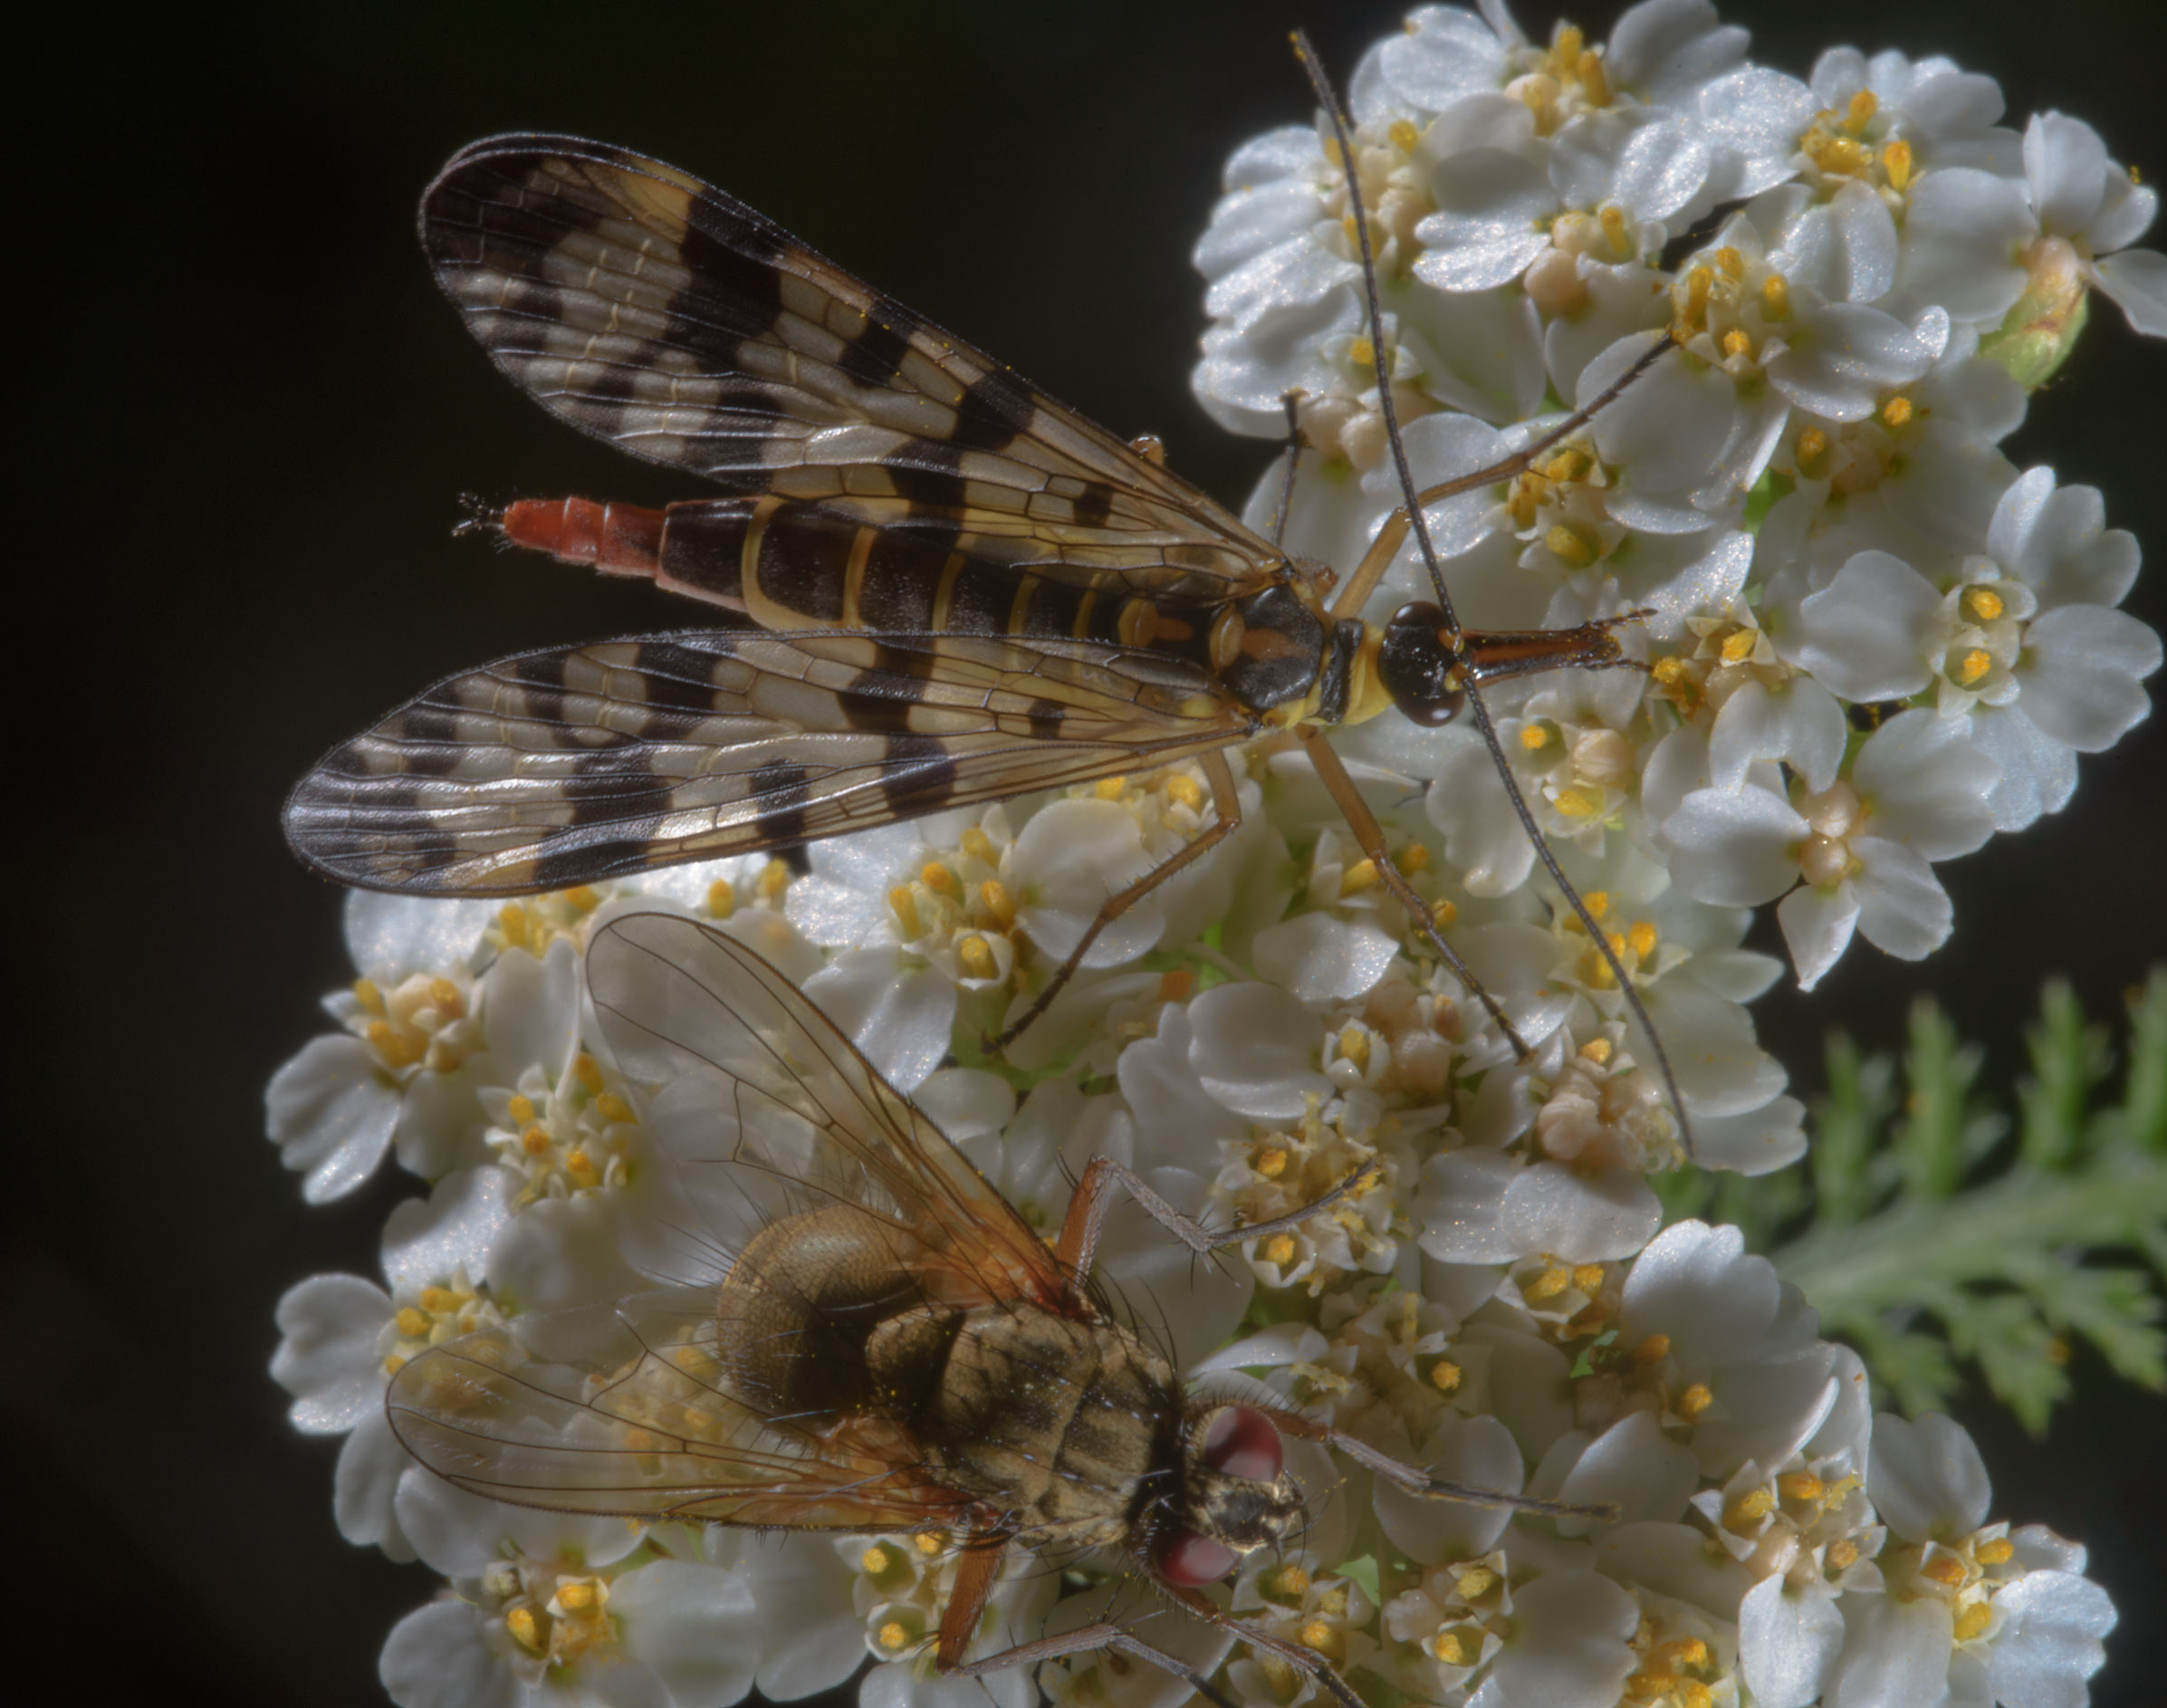 Scorpionfly and a fly on flowers of yarrow...miles south from St.Petersburg. Russia